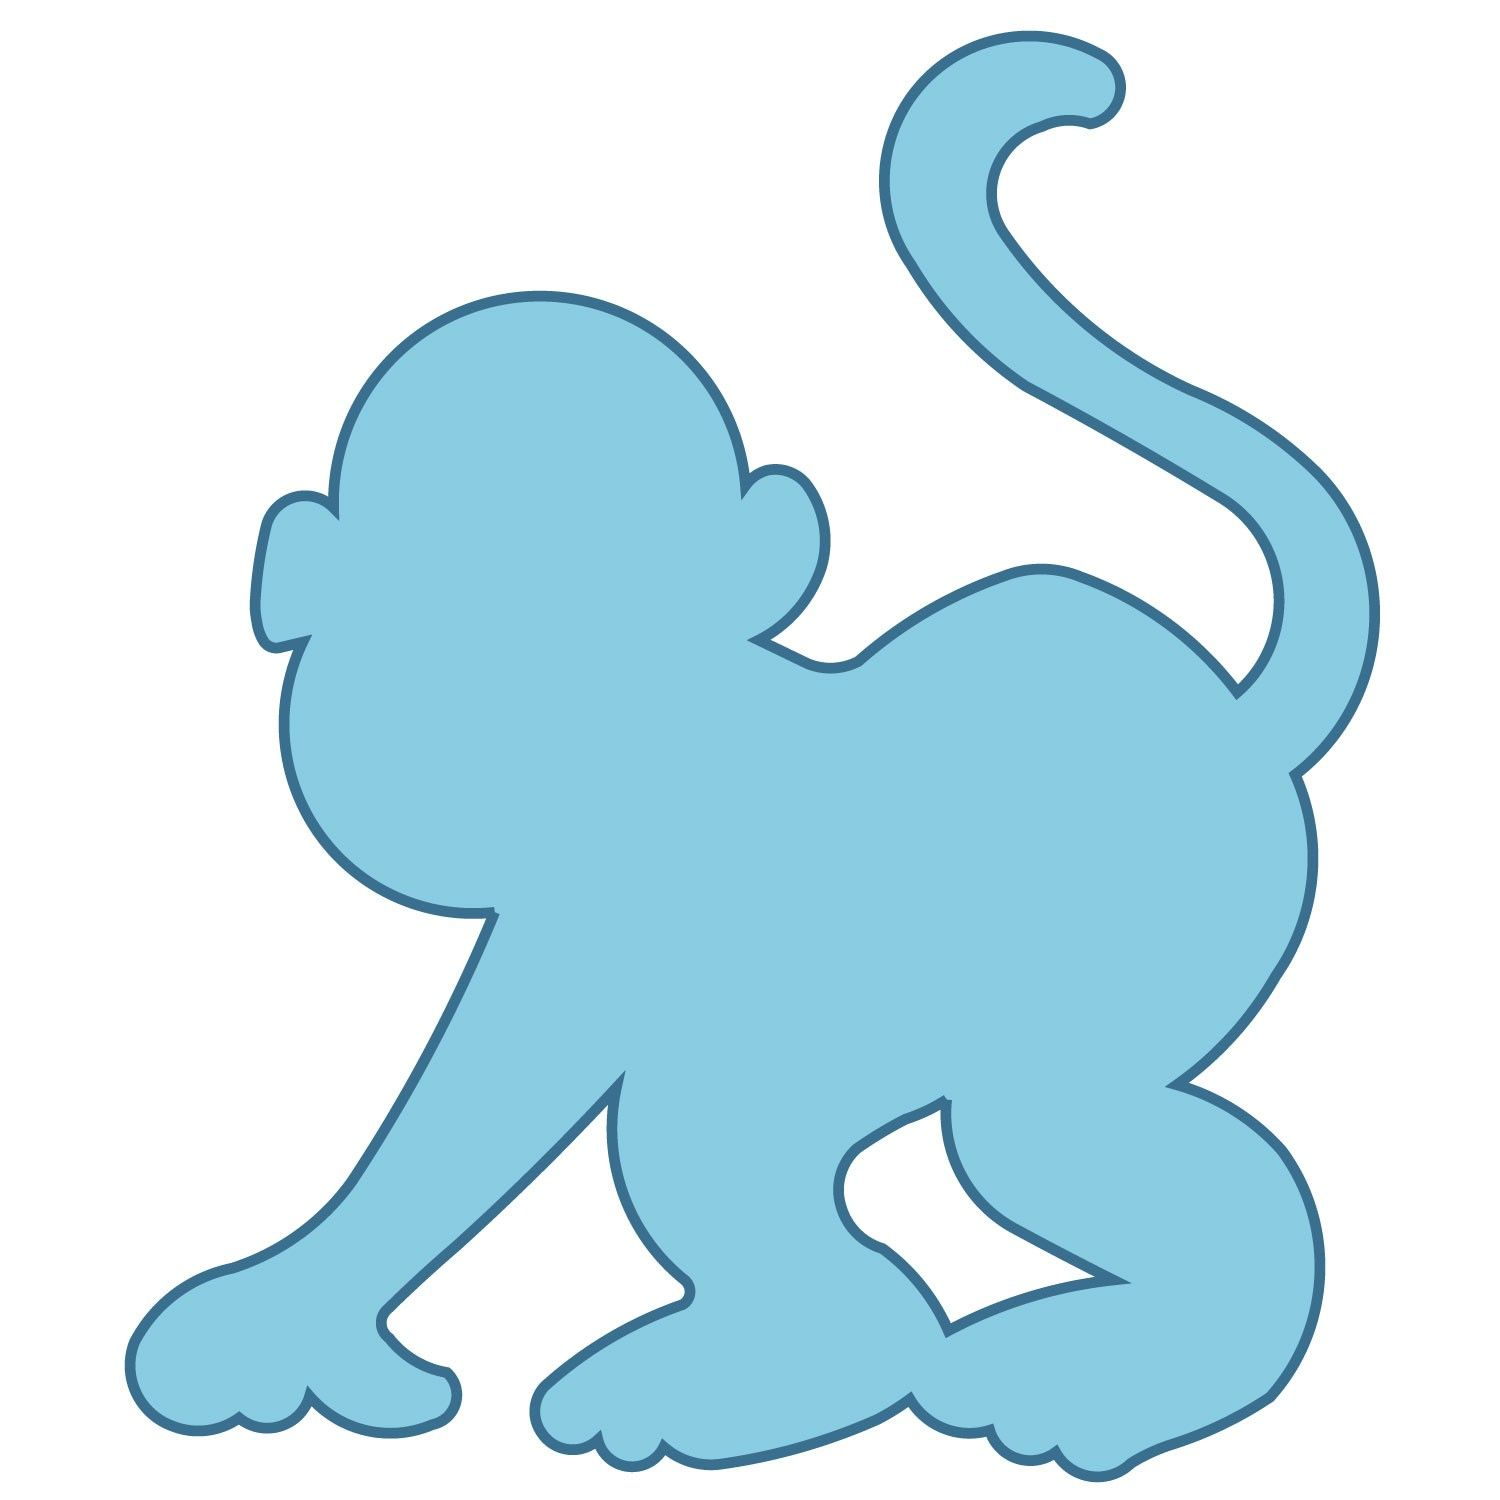 monkey shape